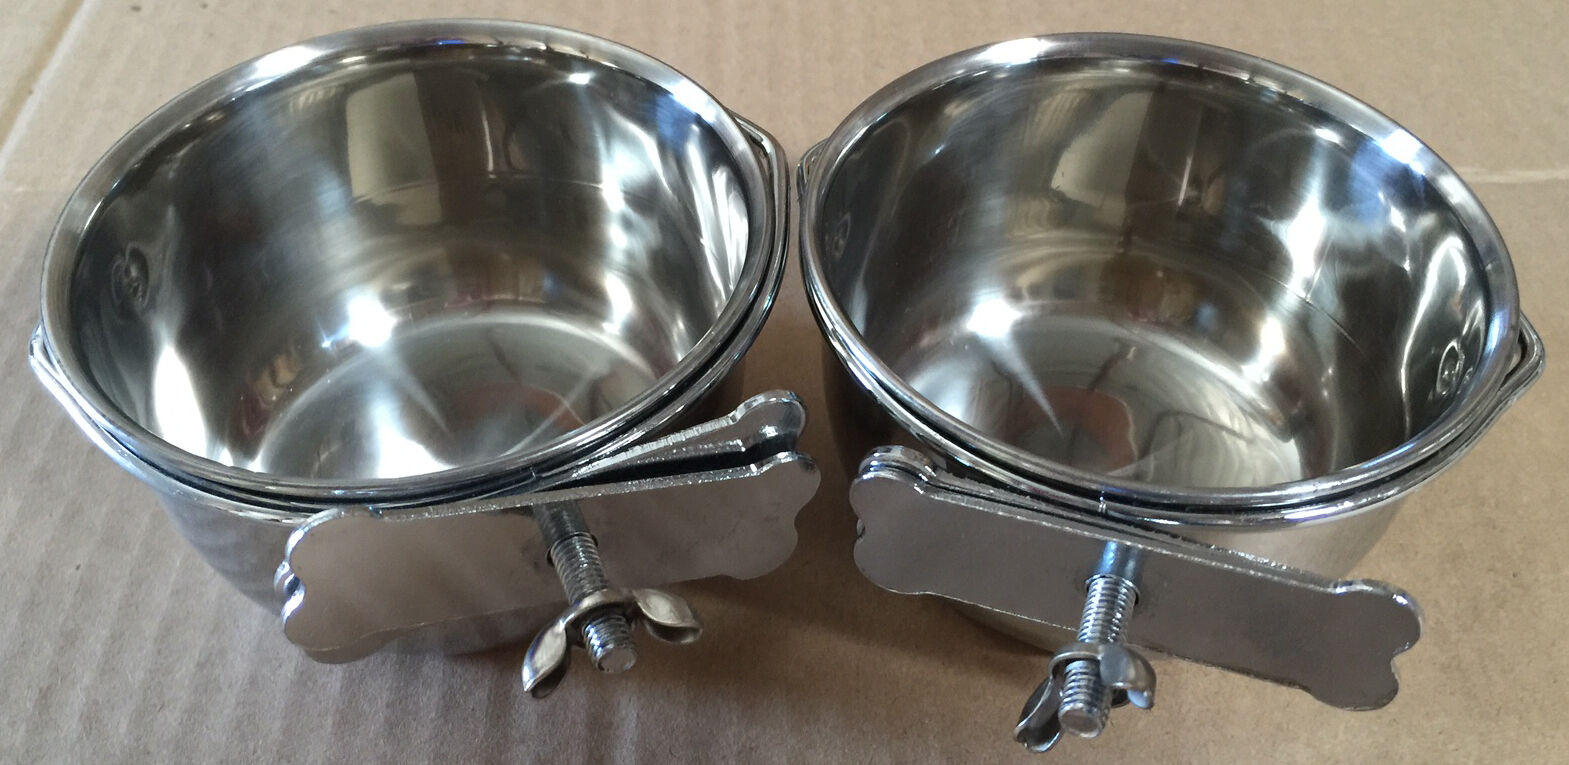 Lot of 2 Bird Parrot Cage Stainless Steel Seed Water Feeder